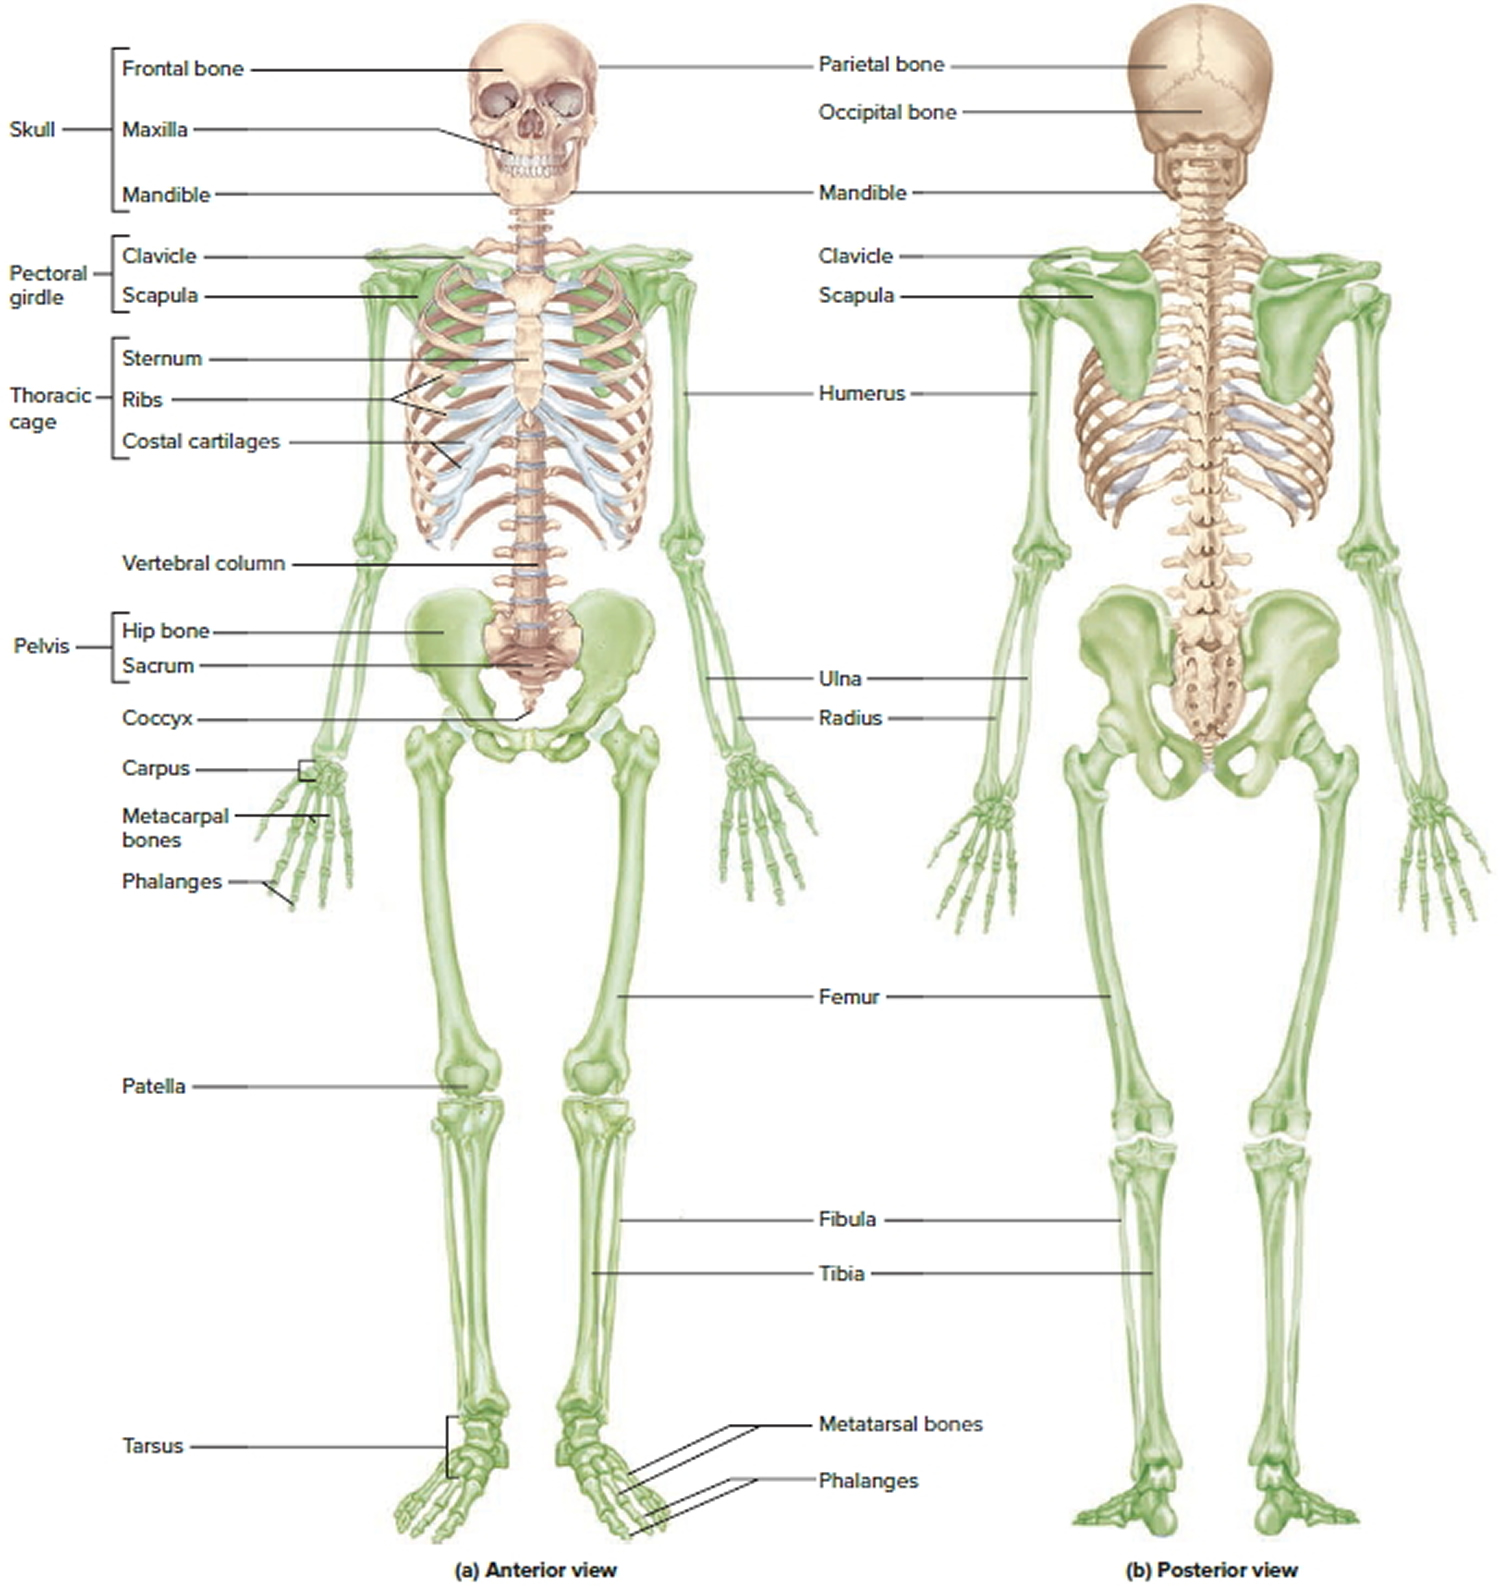 Anatomy of the skeleton